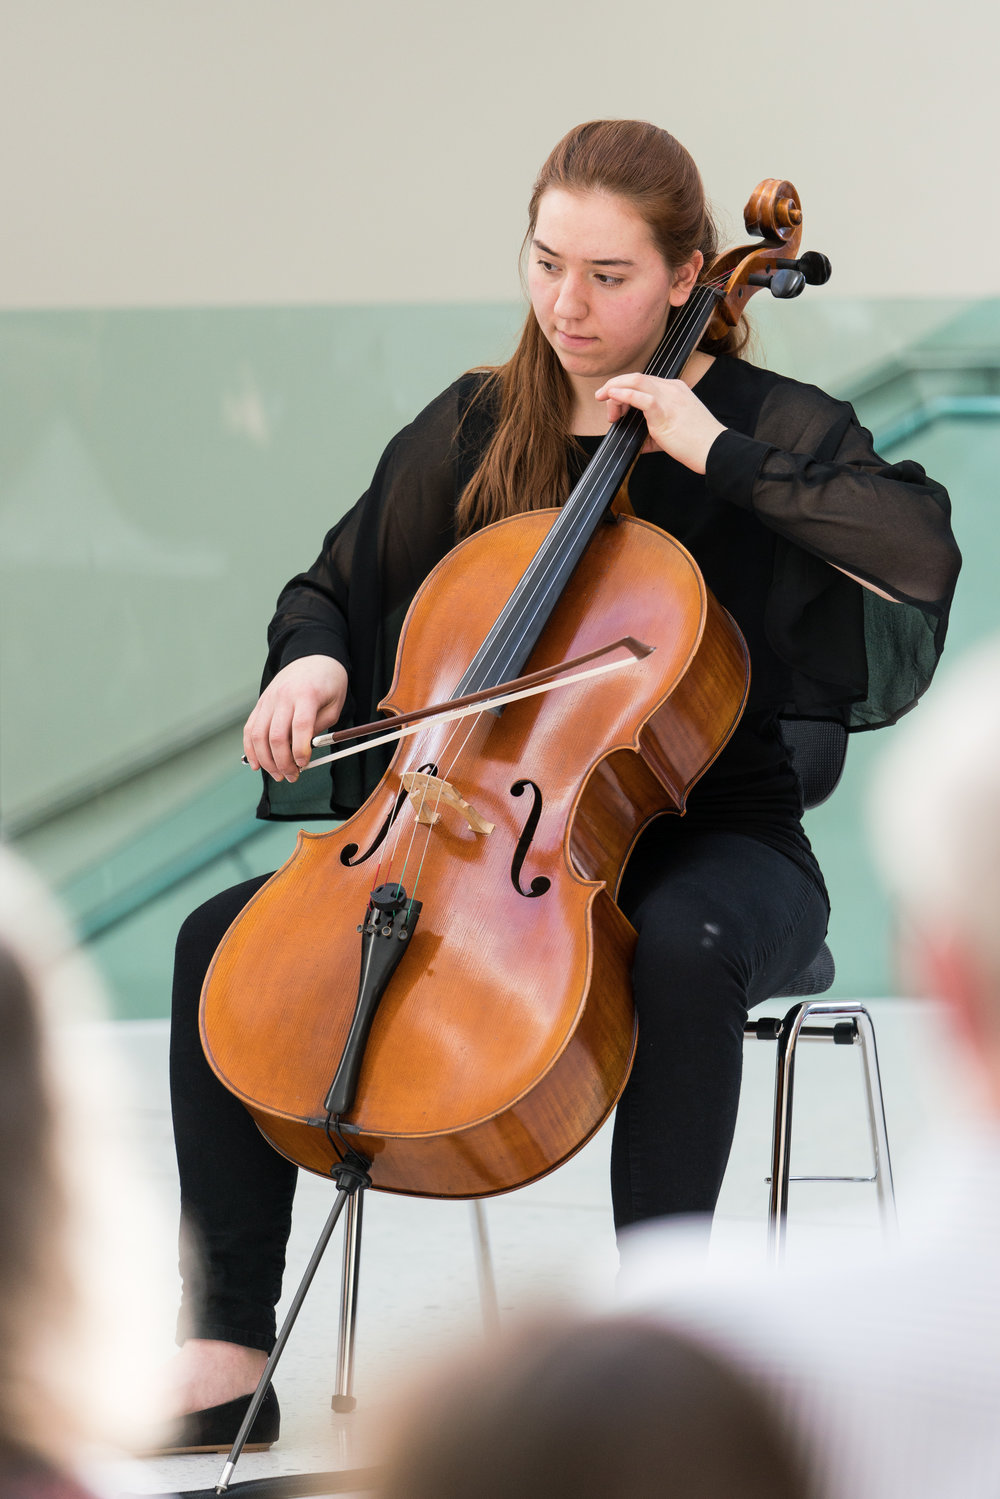 Konzert am Mittag - Cello20180206_034-036.jpg